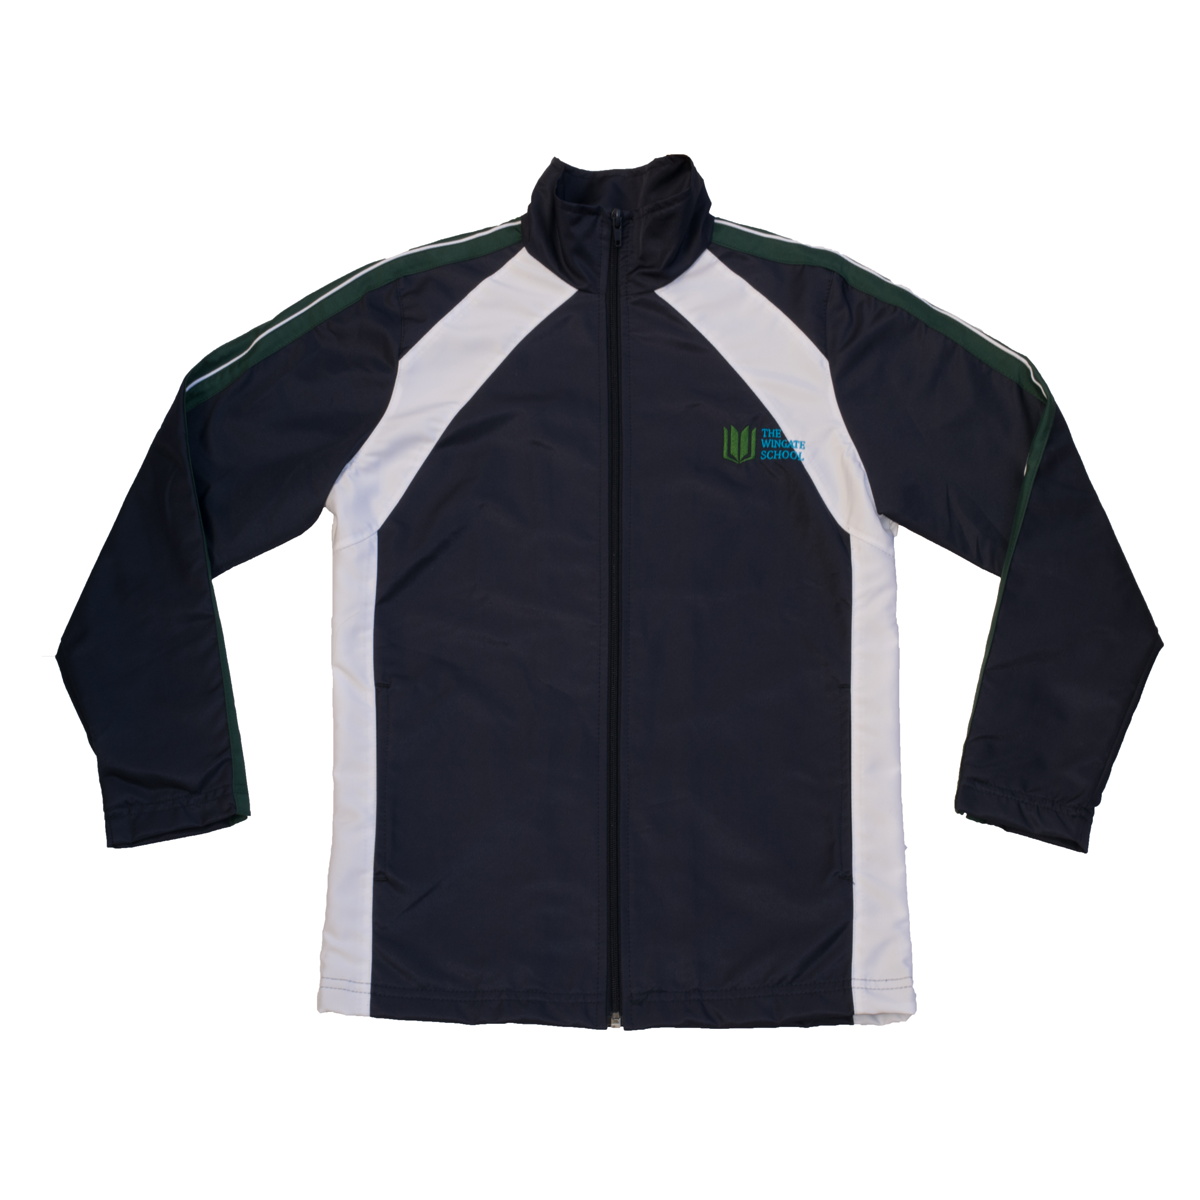 Uniforme de deportes - Chamarra (Sports uniform - Jacket)